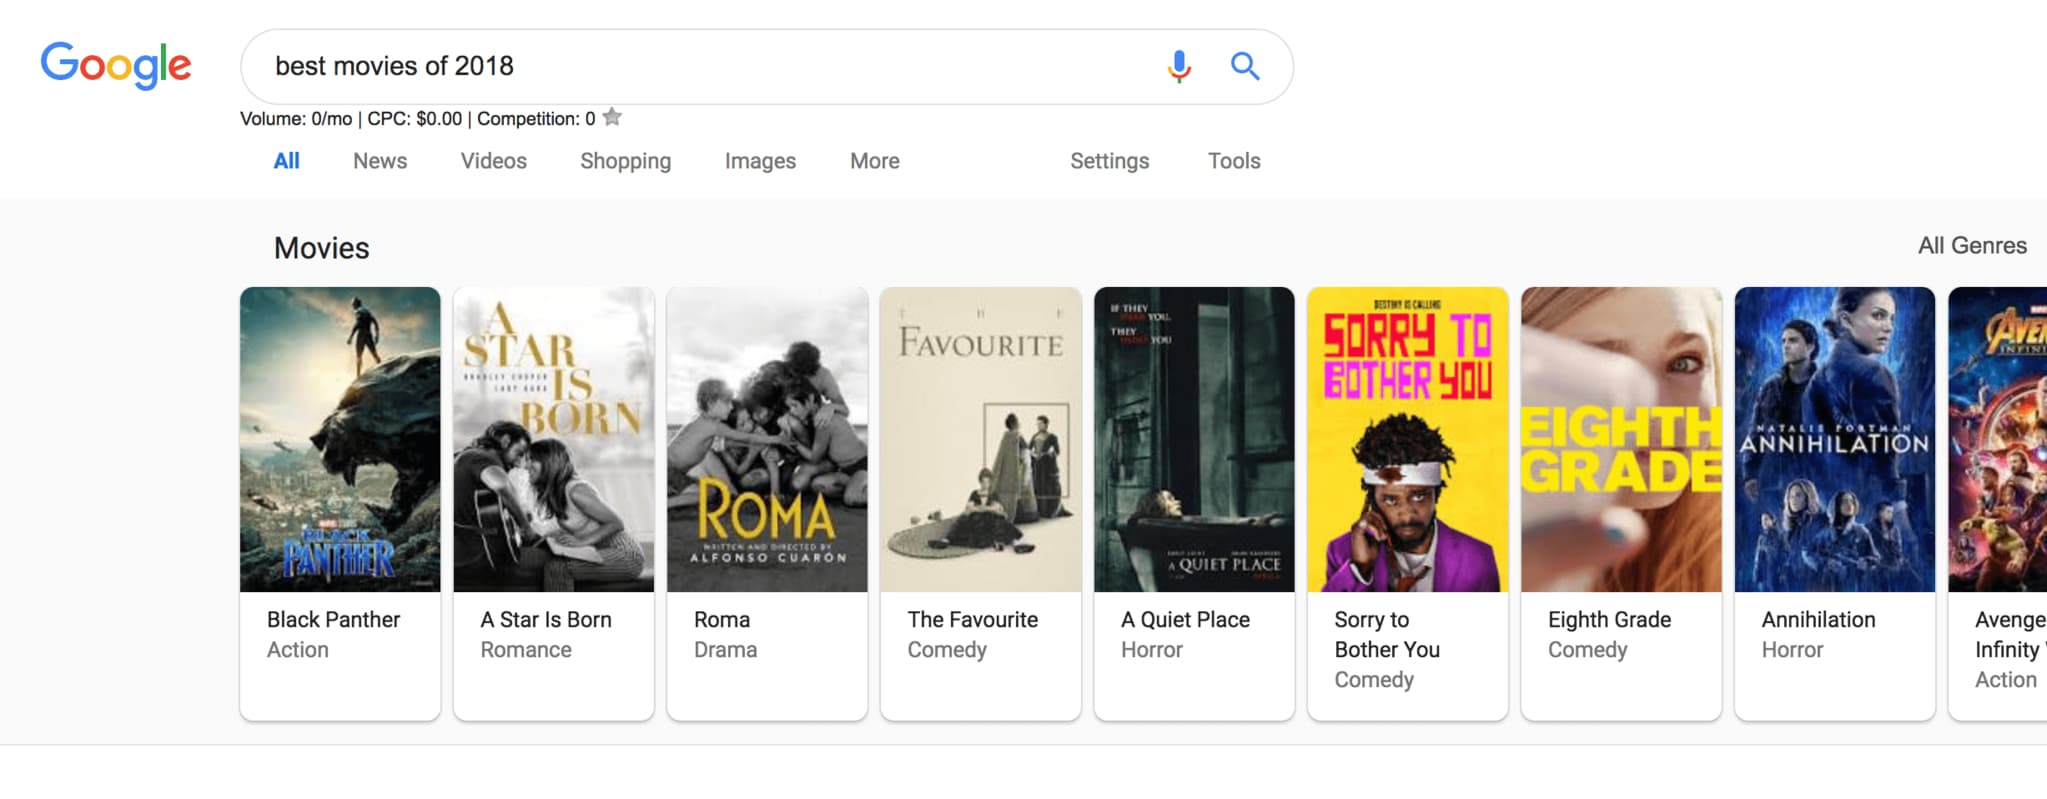 knowledge graph showcasing movies of 2018 in google SERPs